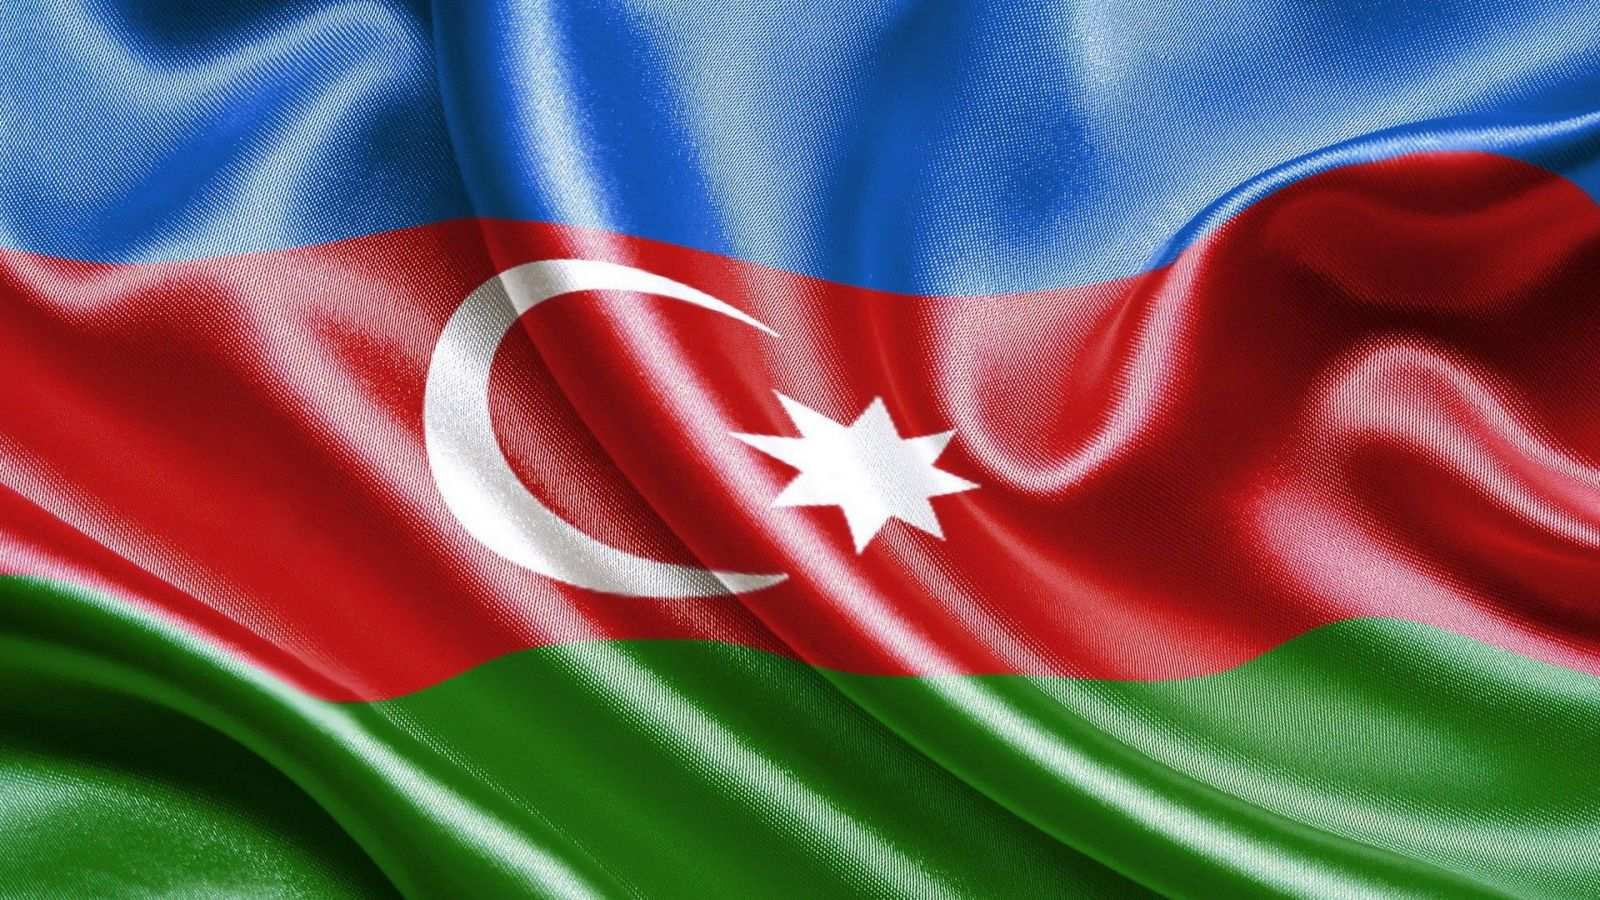 Average Monthly Pension in Azerbaijan Increased by 14.7% in 2020